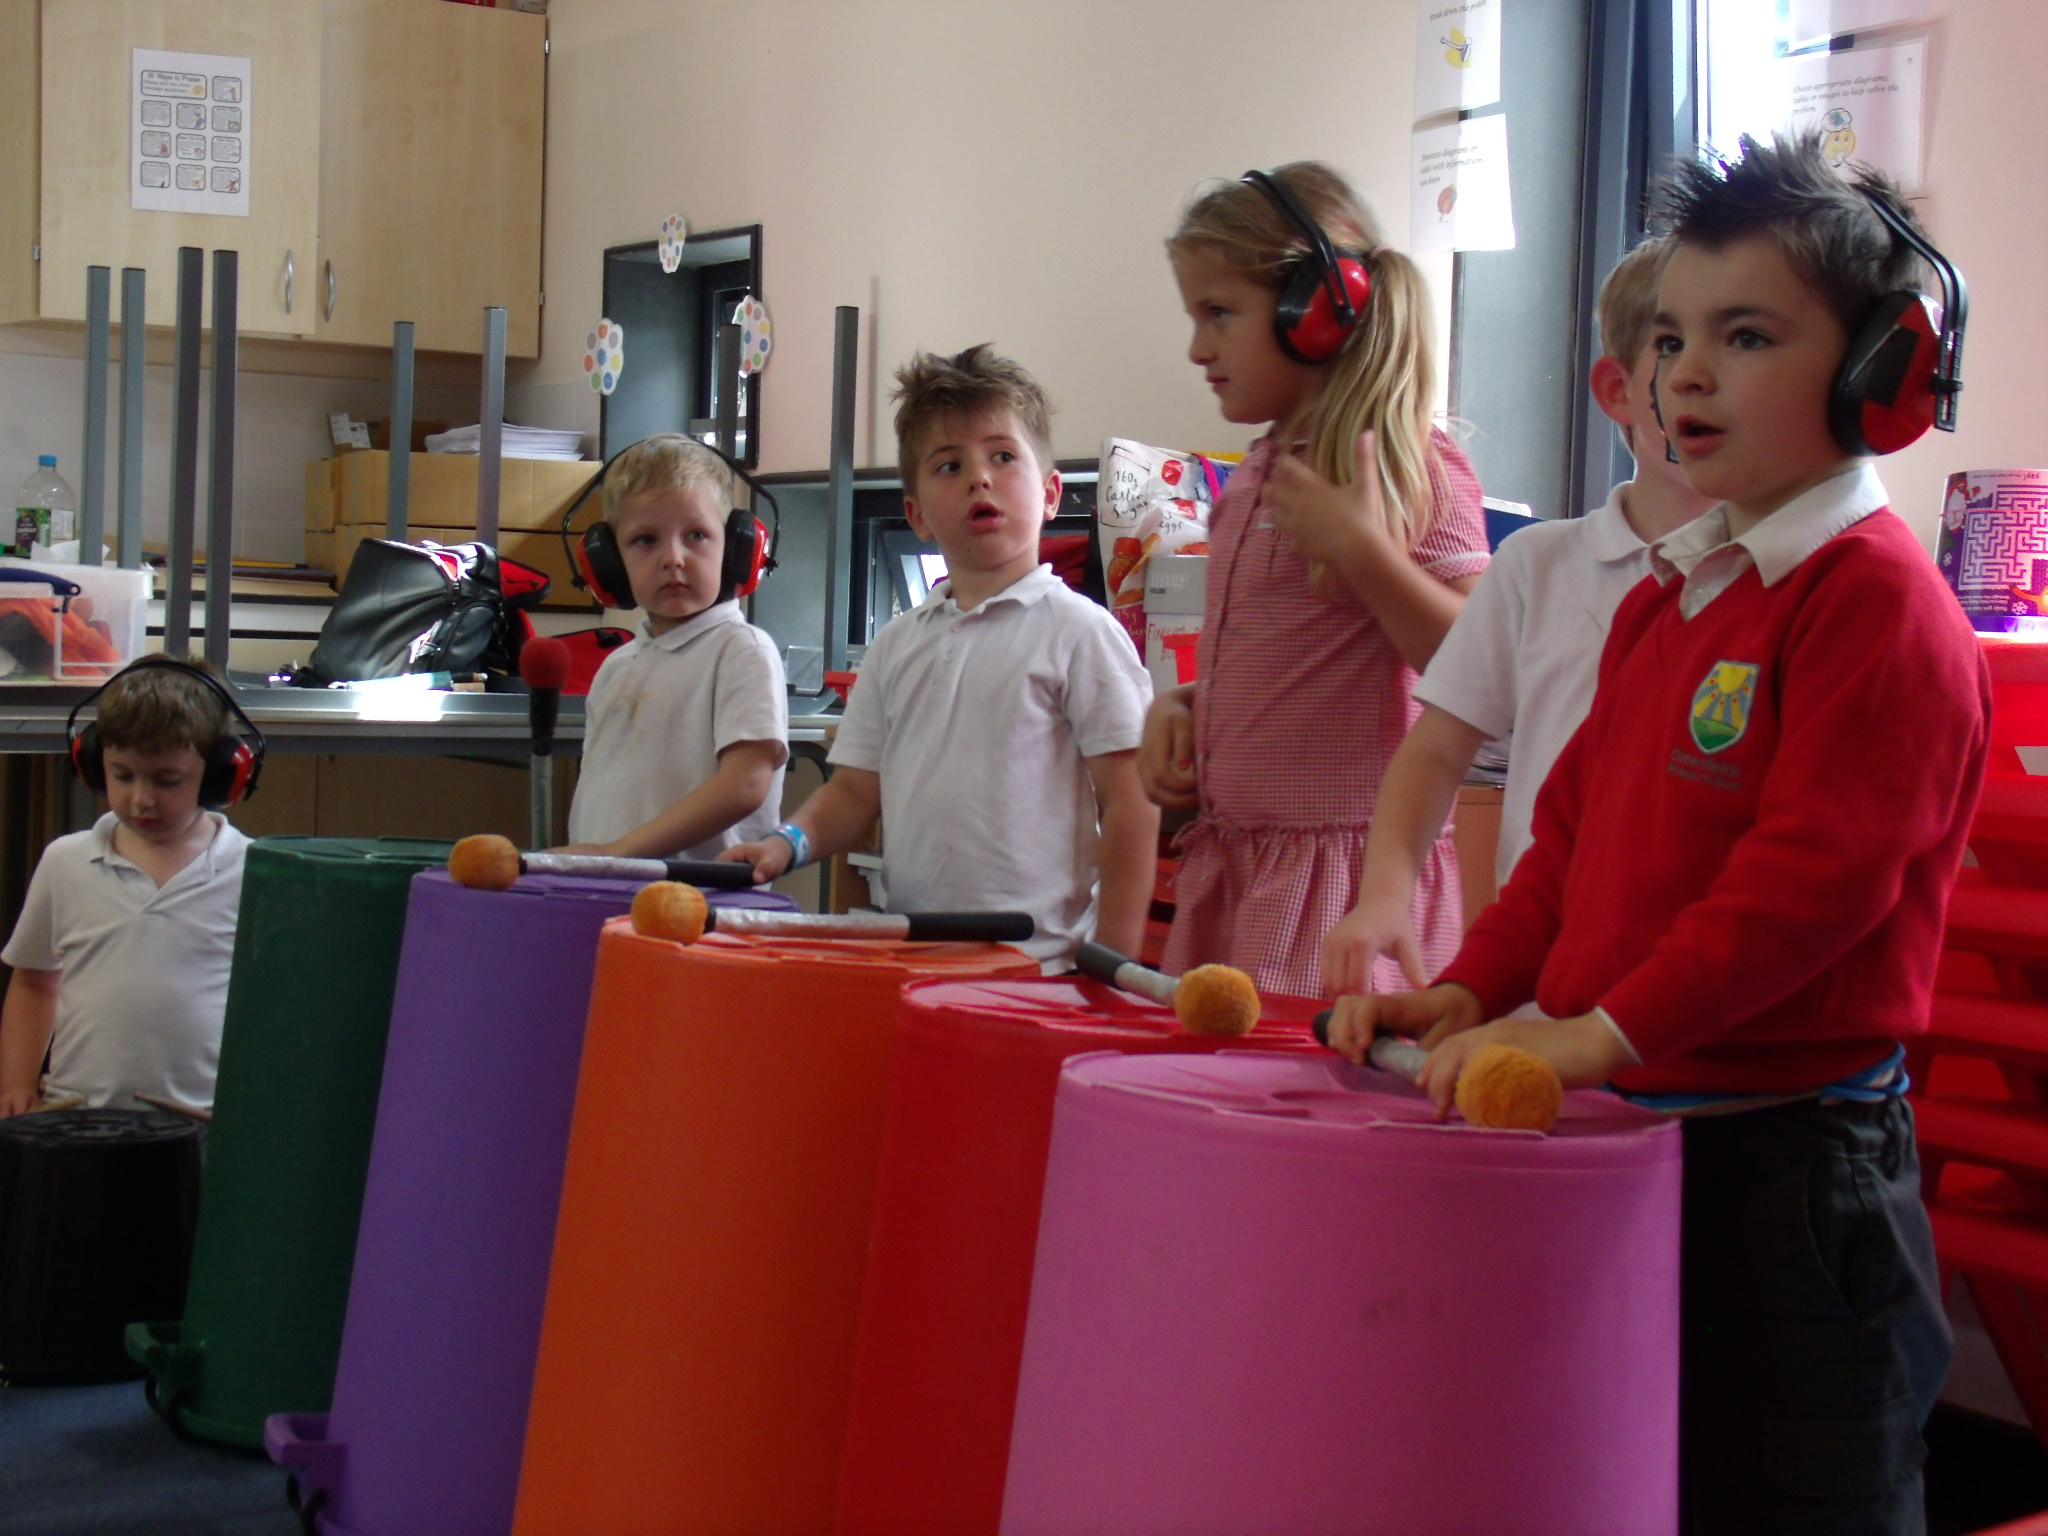 School children playing music on large colourful empty bins